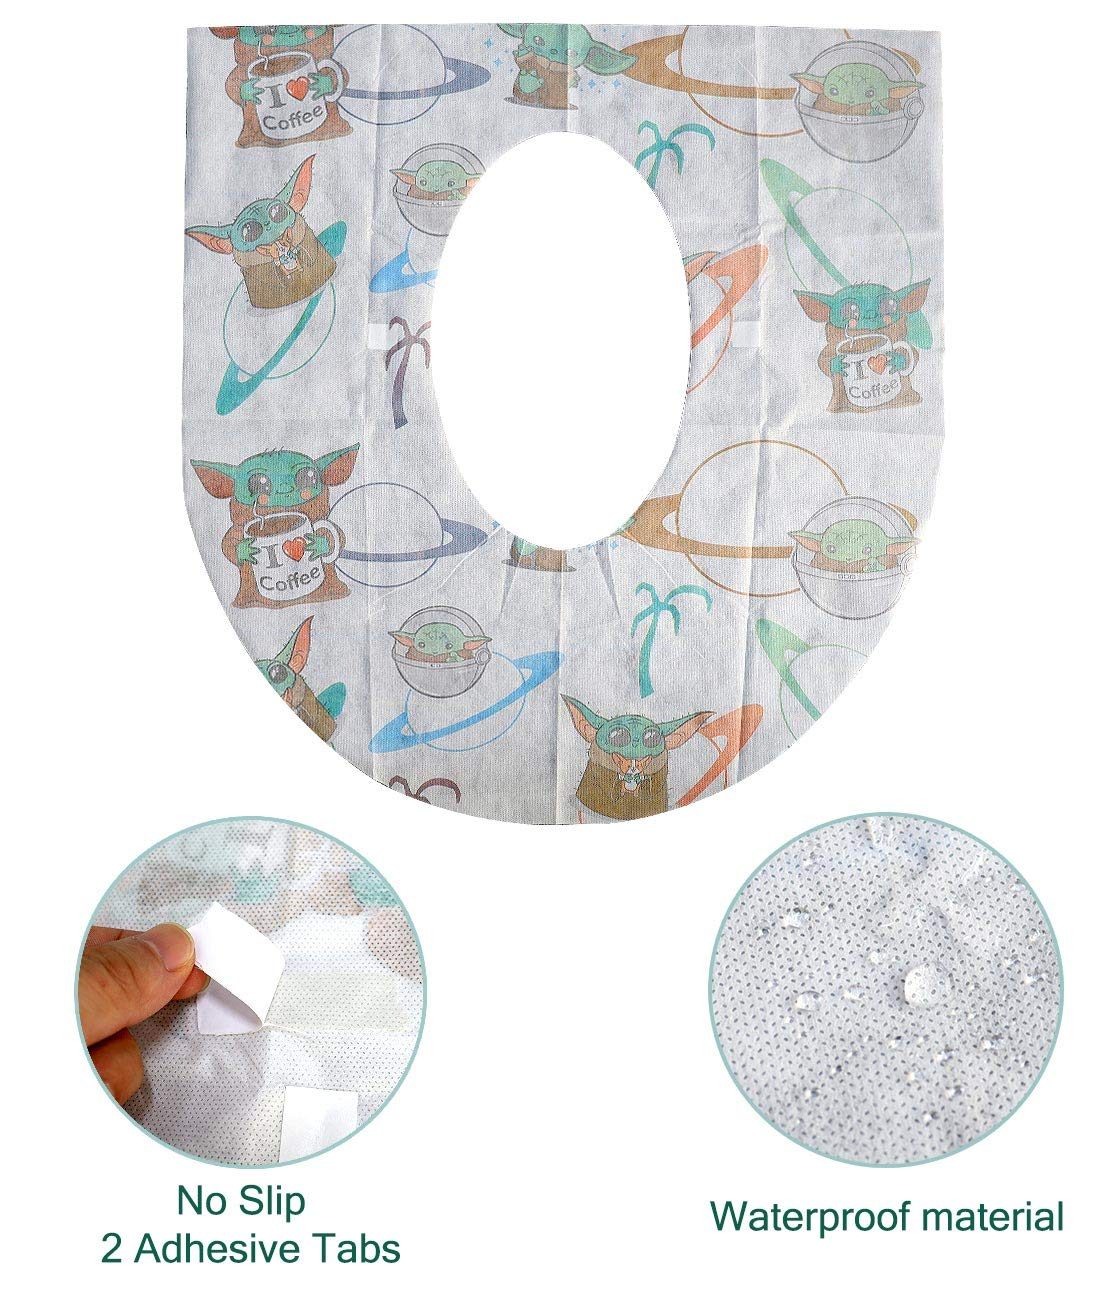 Easy to Carry-Portable with Non-Slip Adhesives-Waterproof Toilet Seat Covers Disposable Toddlers 20 Pack for Adults and Kids! Perfect for Travel and on The go